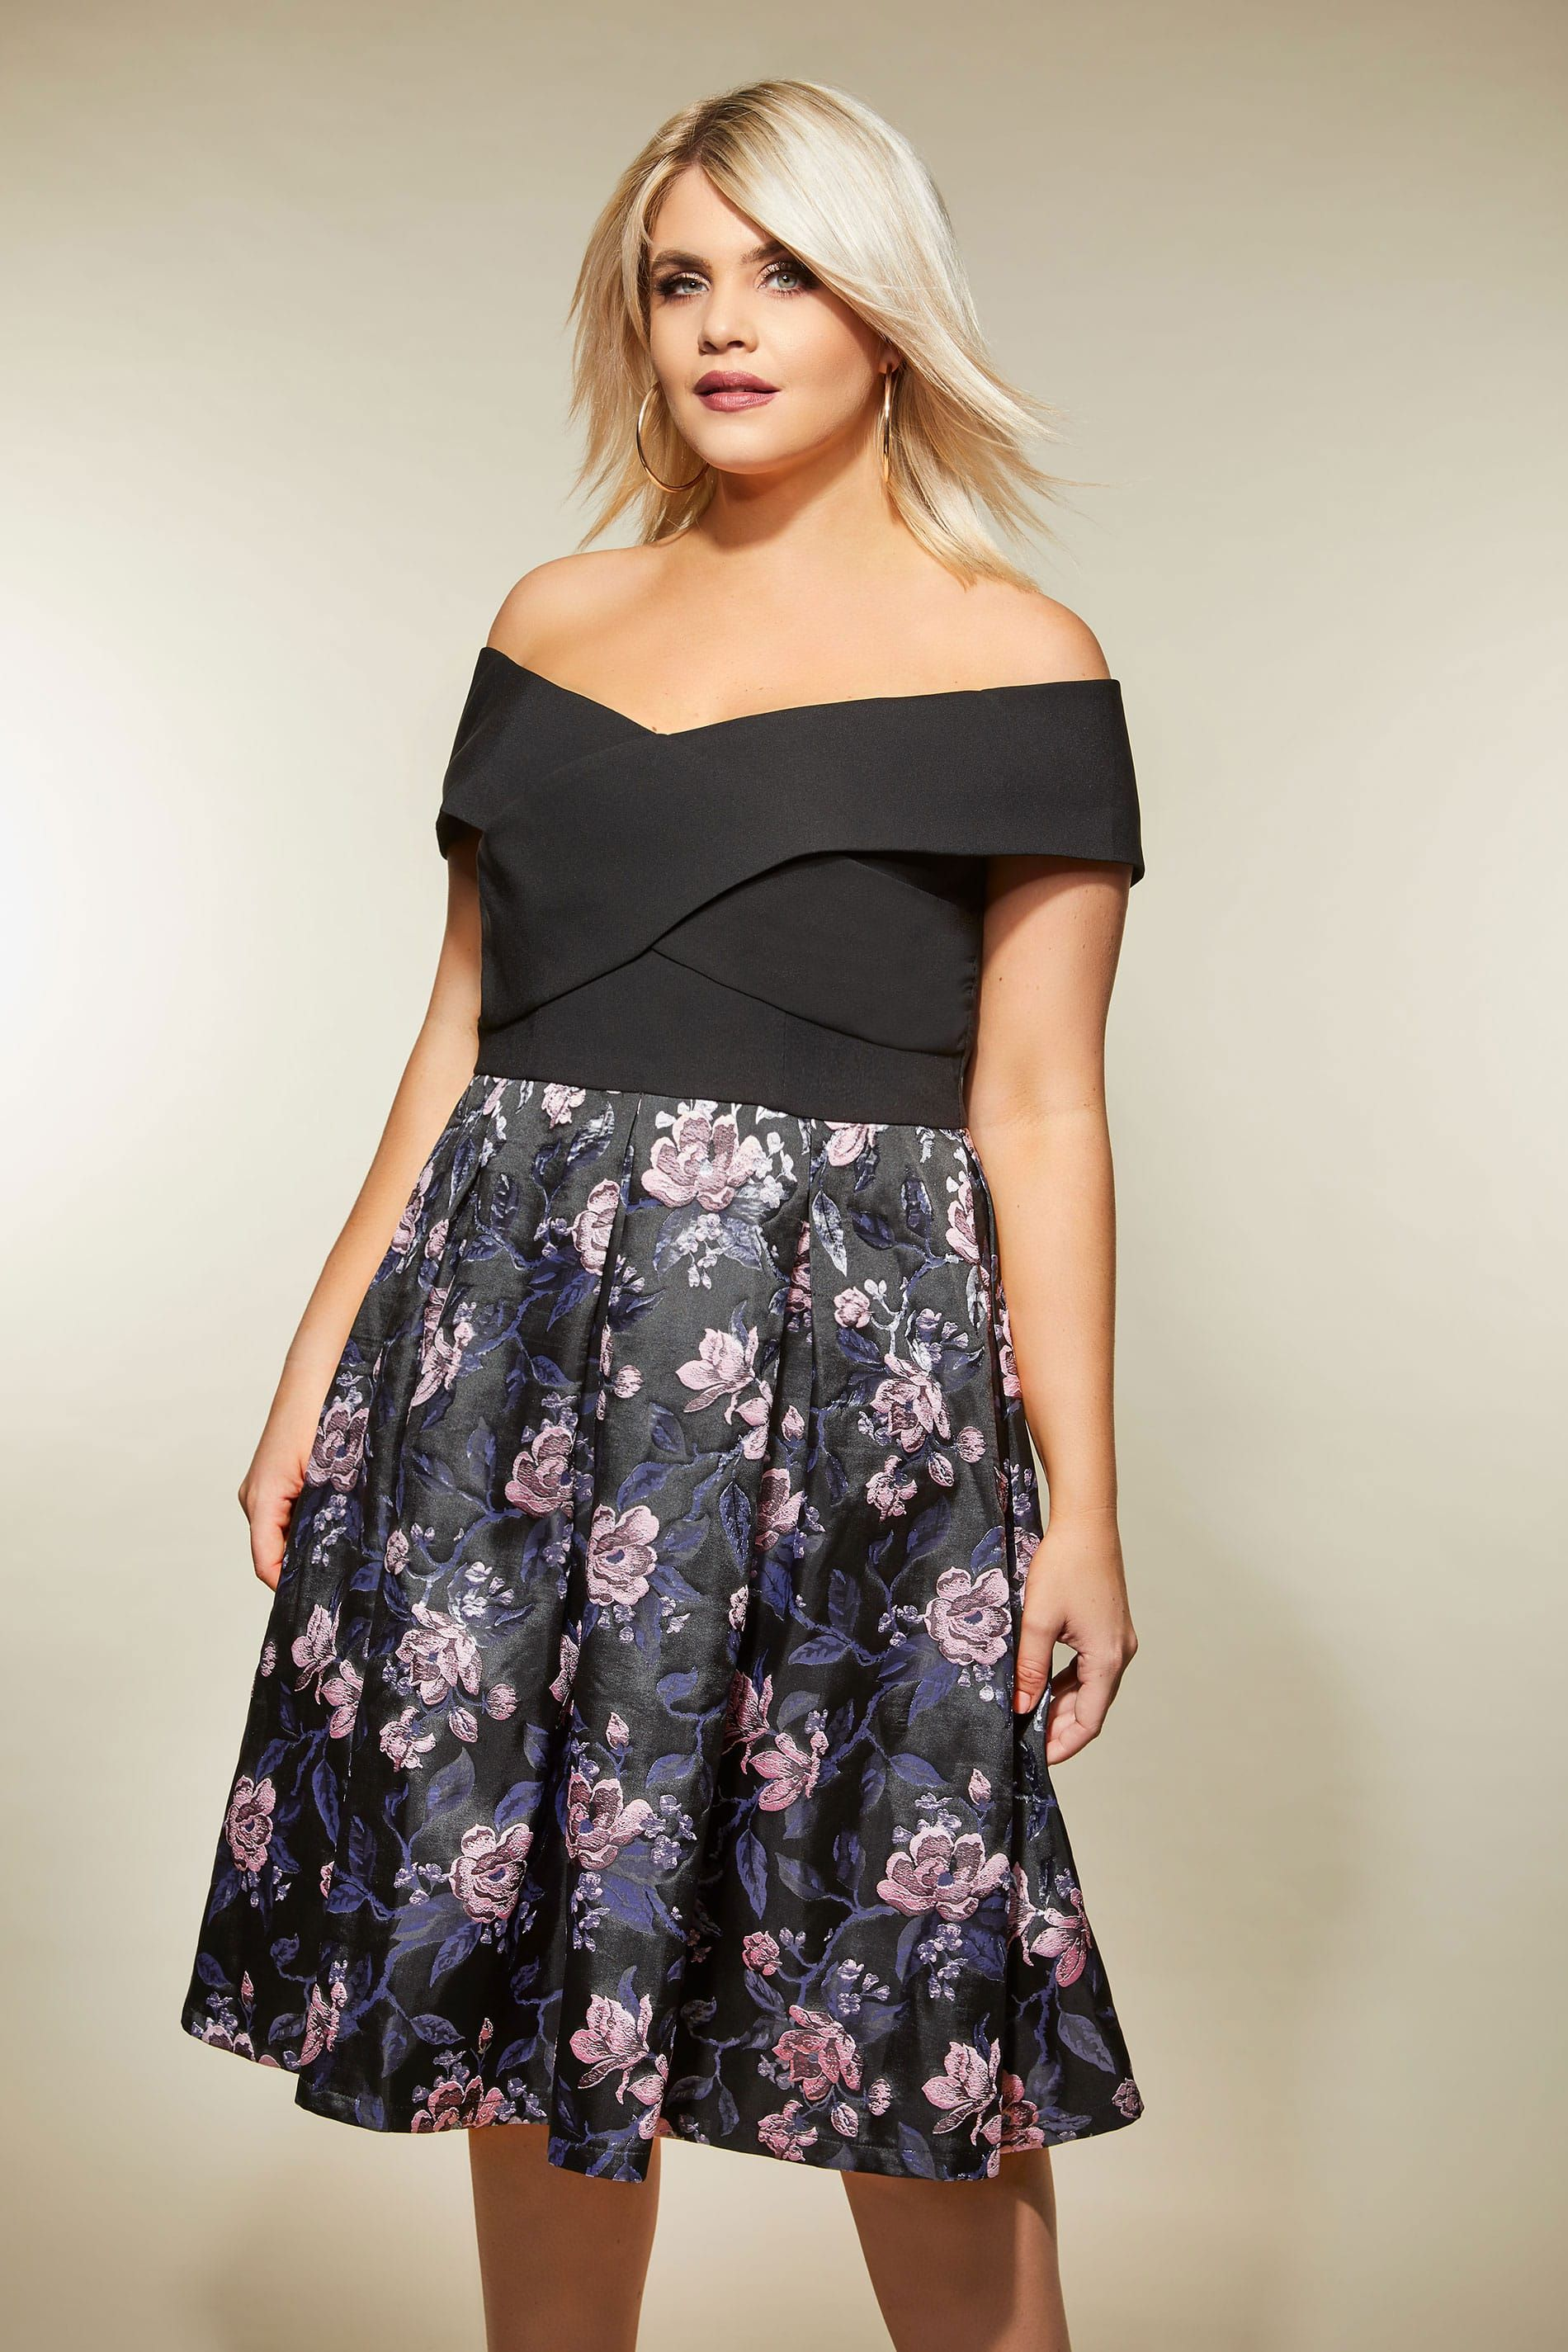 19d15b1533 CHI CHI Black Floral Bardot Dress, Plus size 16 to 26 | Fabulous ...